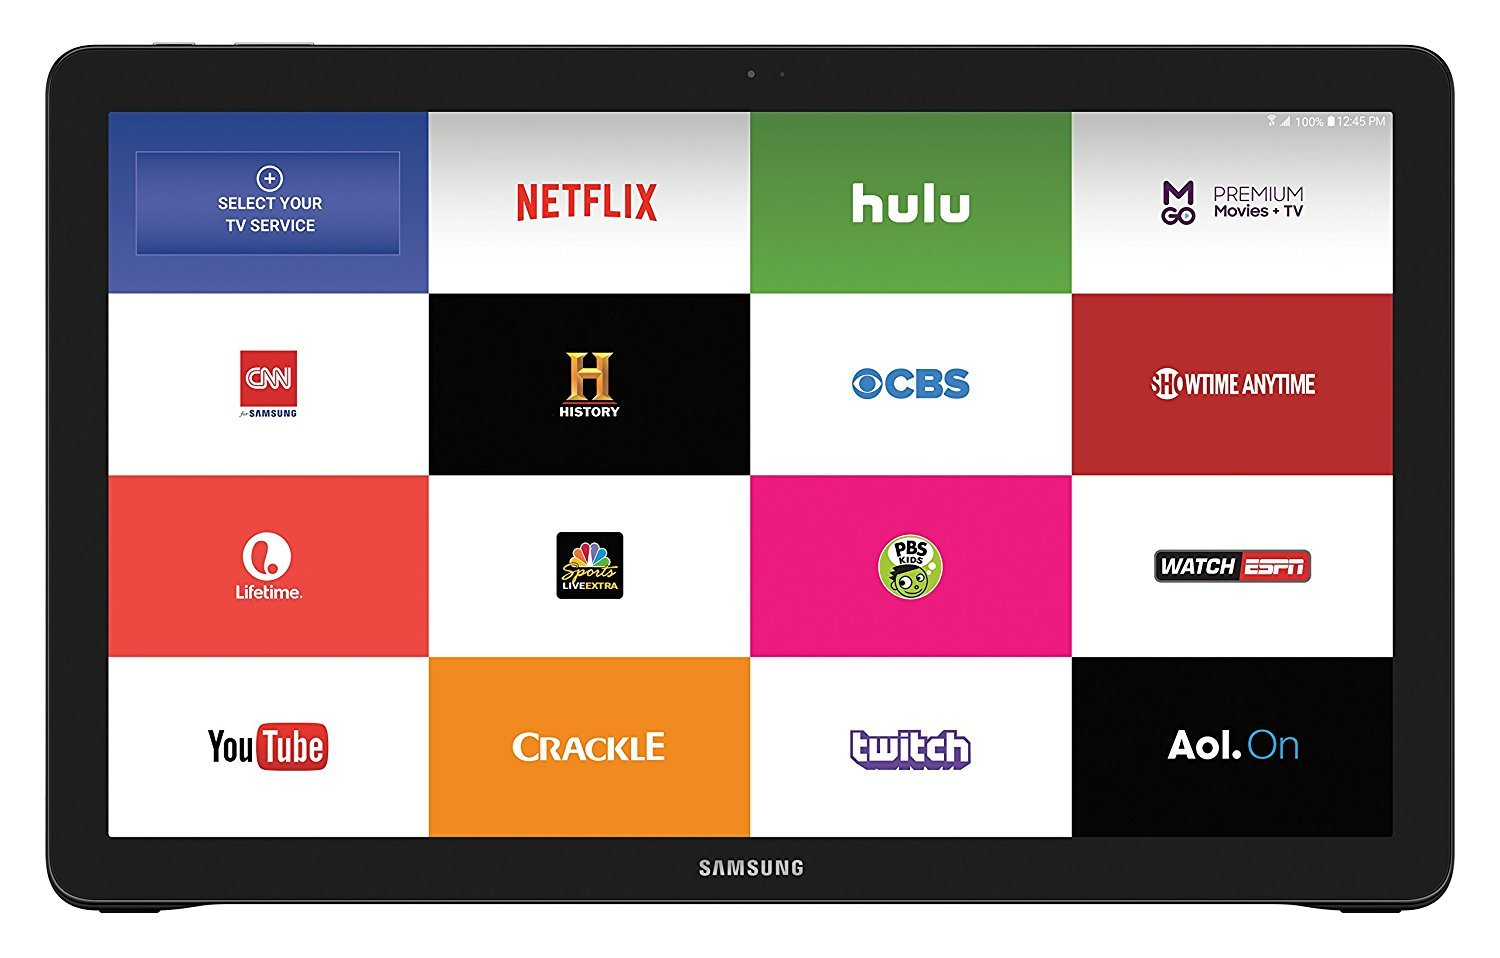 Samsung Galaxy View 64GB Wi-Fi (+ 4G LTE on AT&T) Unlocked Android 18.4'' Large-Display Tablet Computer, Black (Business Packaging / Brown Box) by Samsung